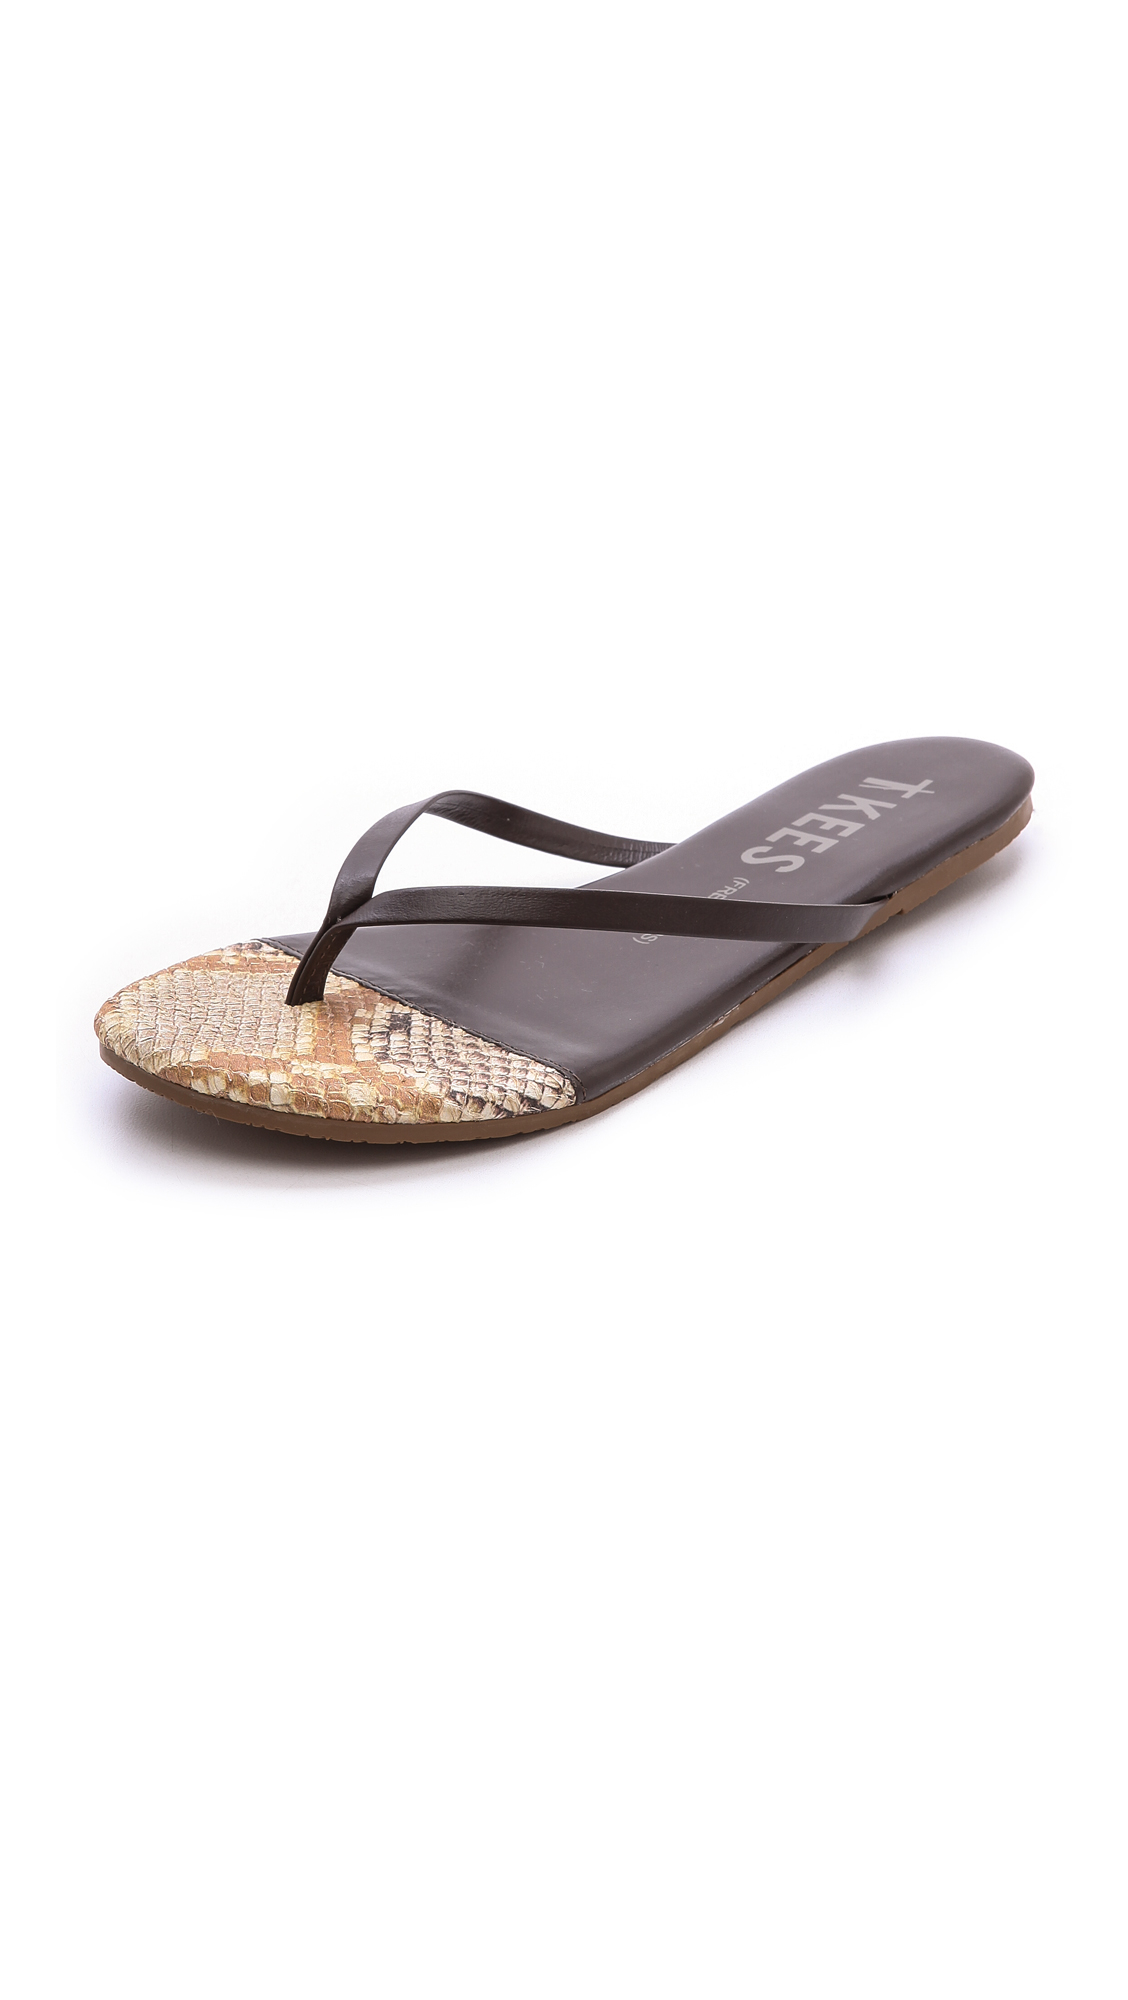 TKEES Flip-Flop-French Tips 9cZv2rJ7